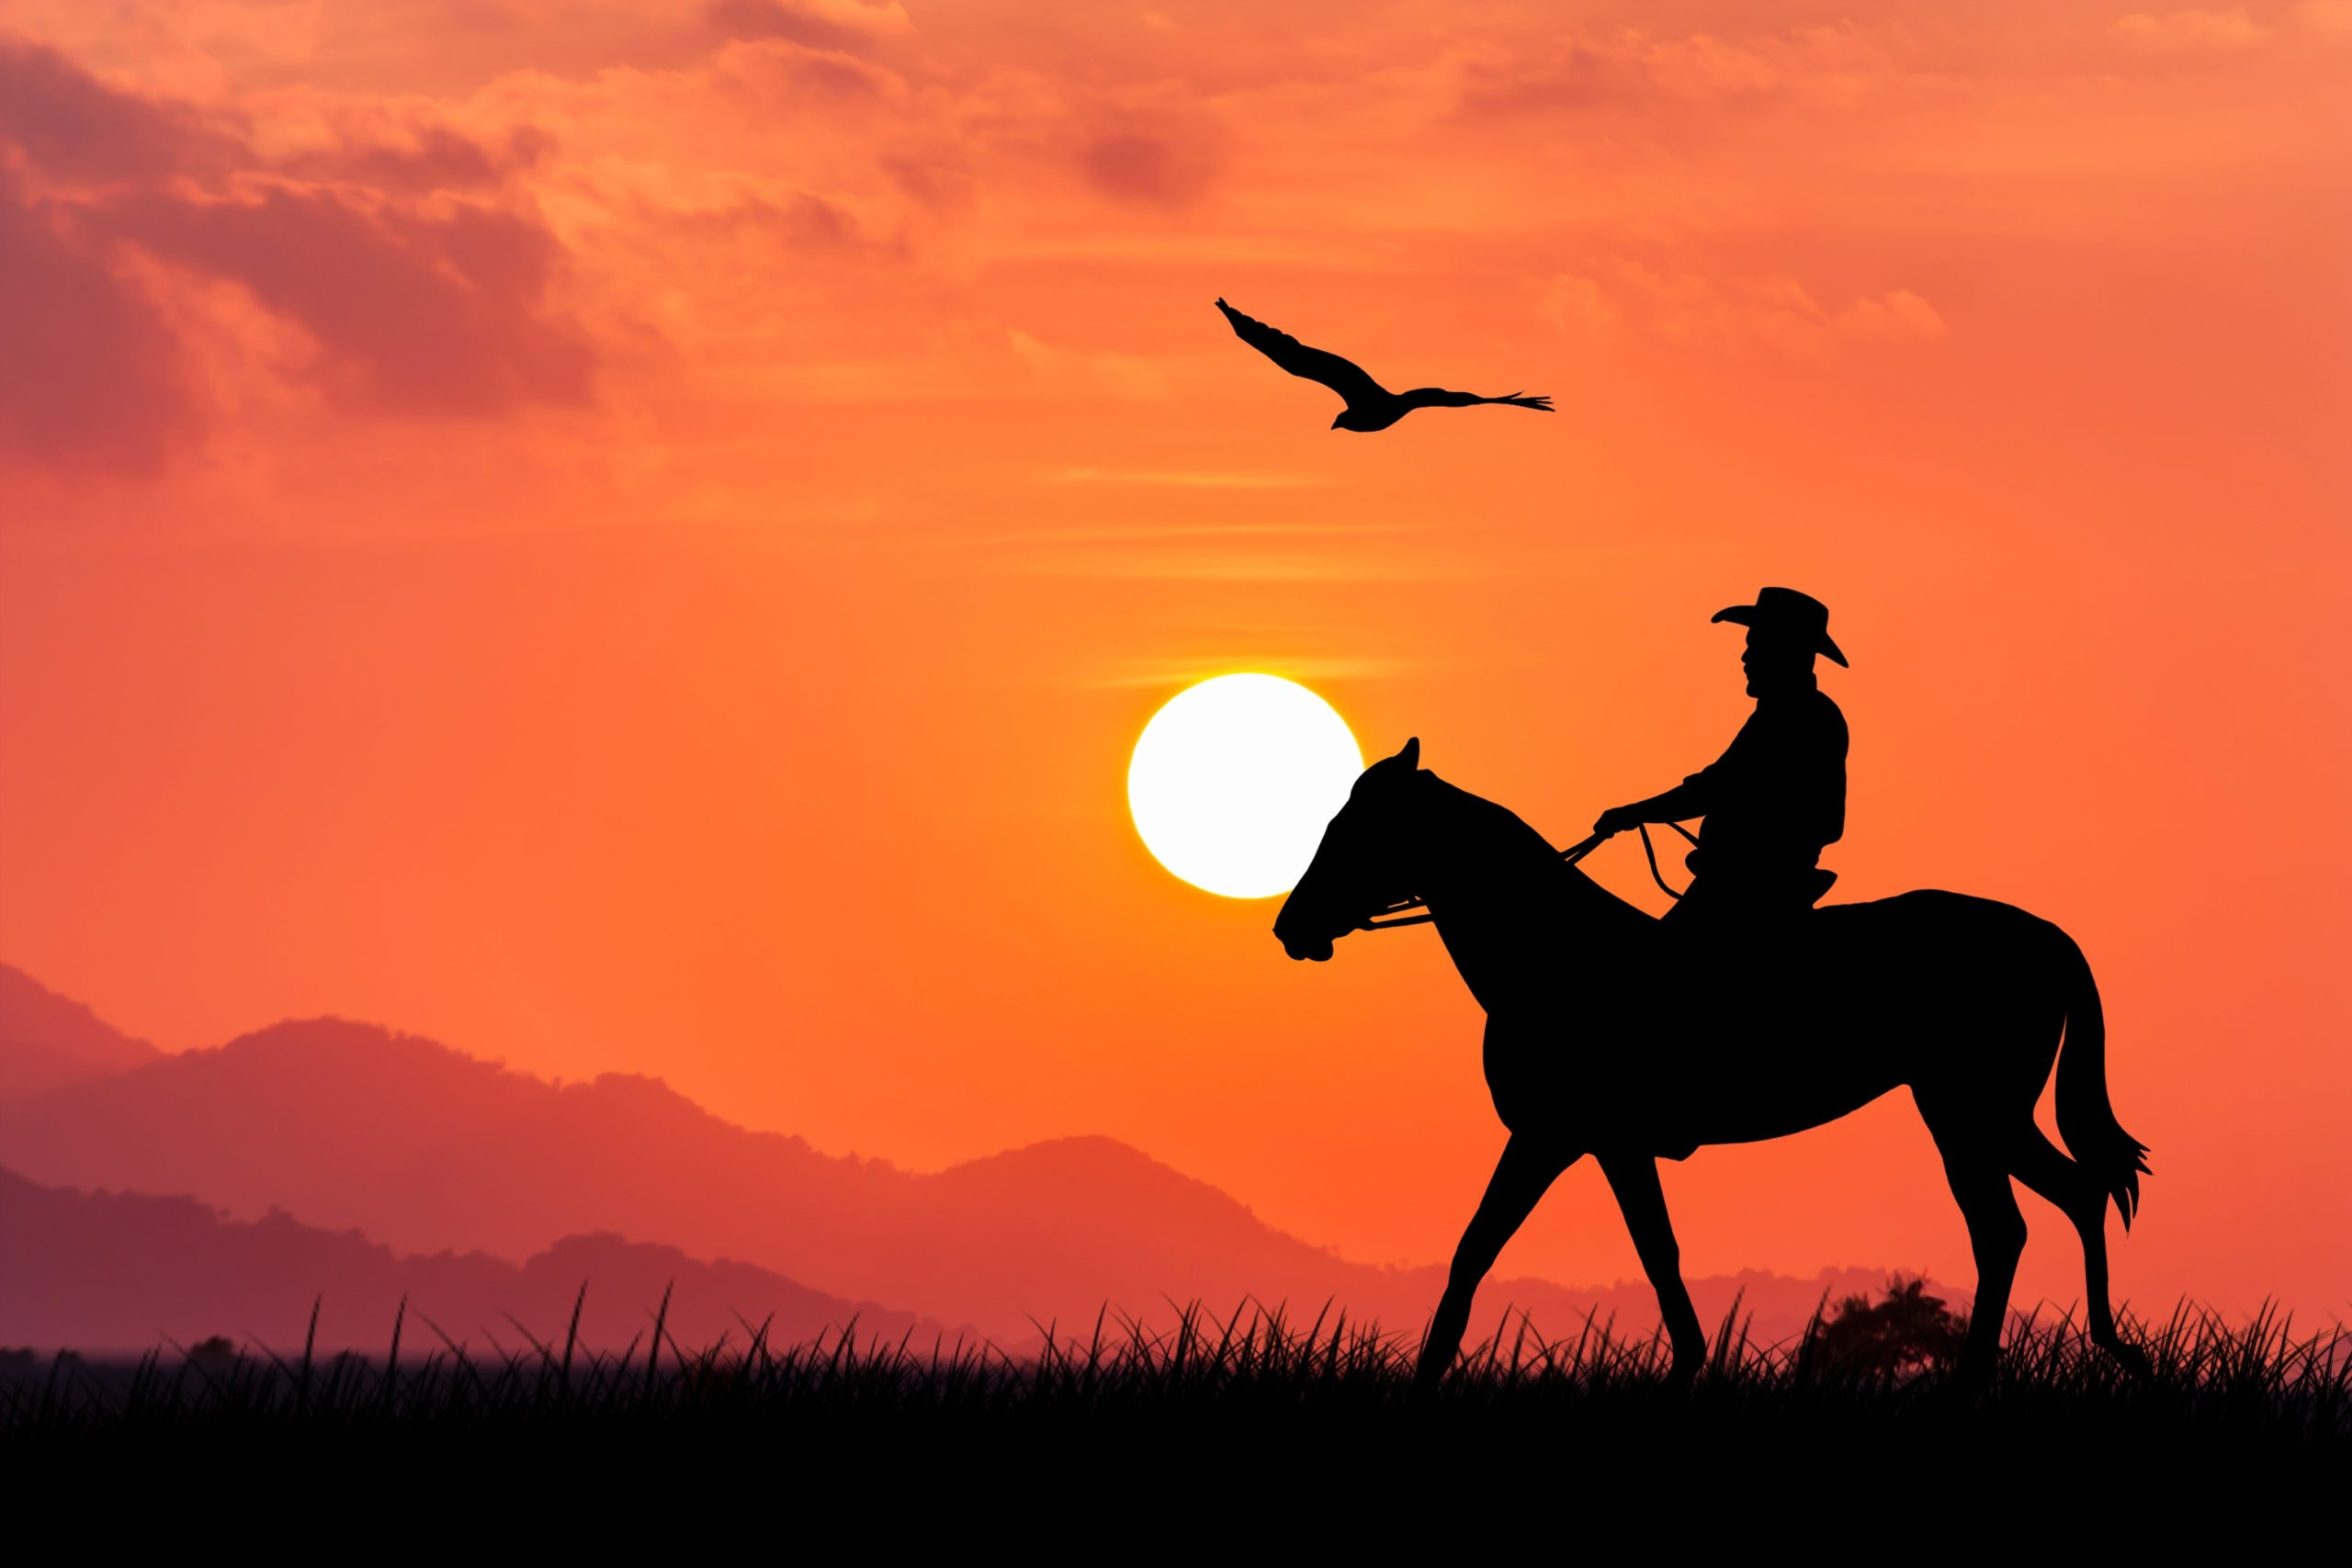 A Wild West sunset picture - a cowboy riding his horse and an eagle is flying over them